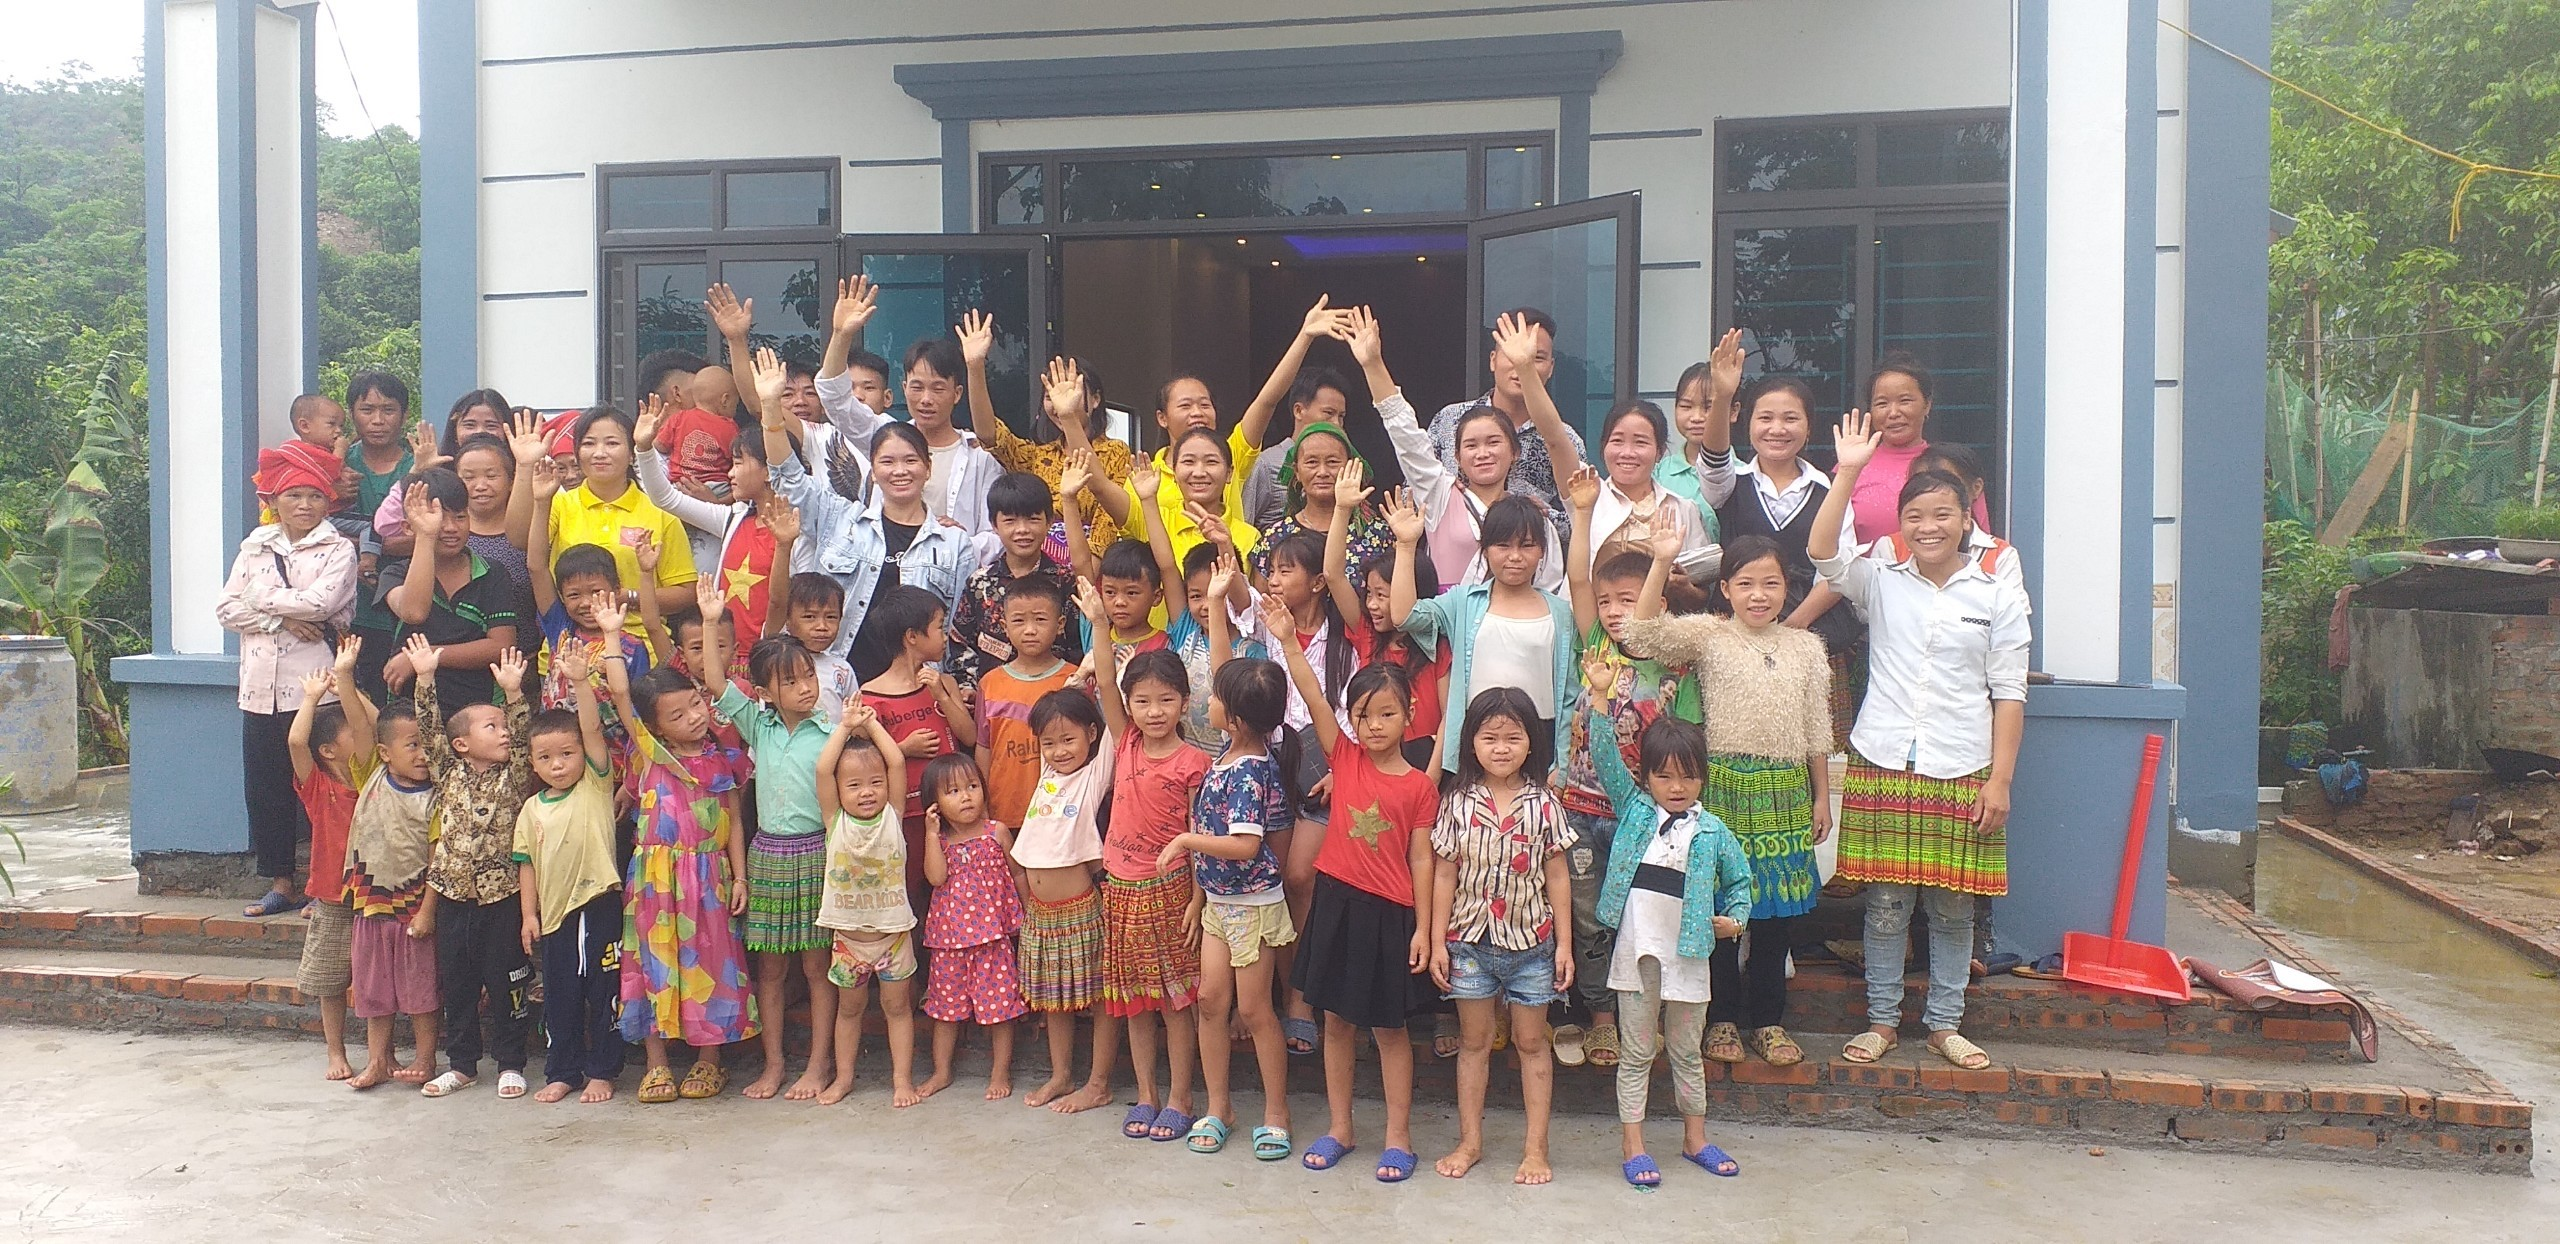 Members at Son Thuy church wave greetings and thanks for help with their beautiful new building.